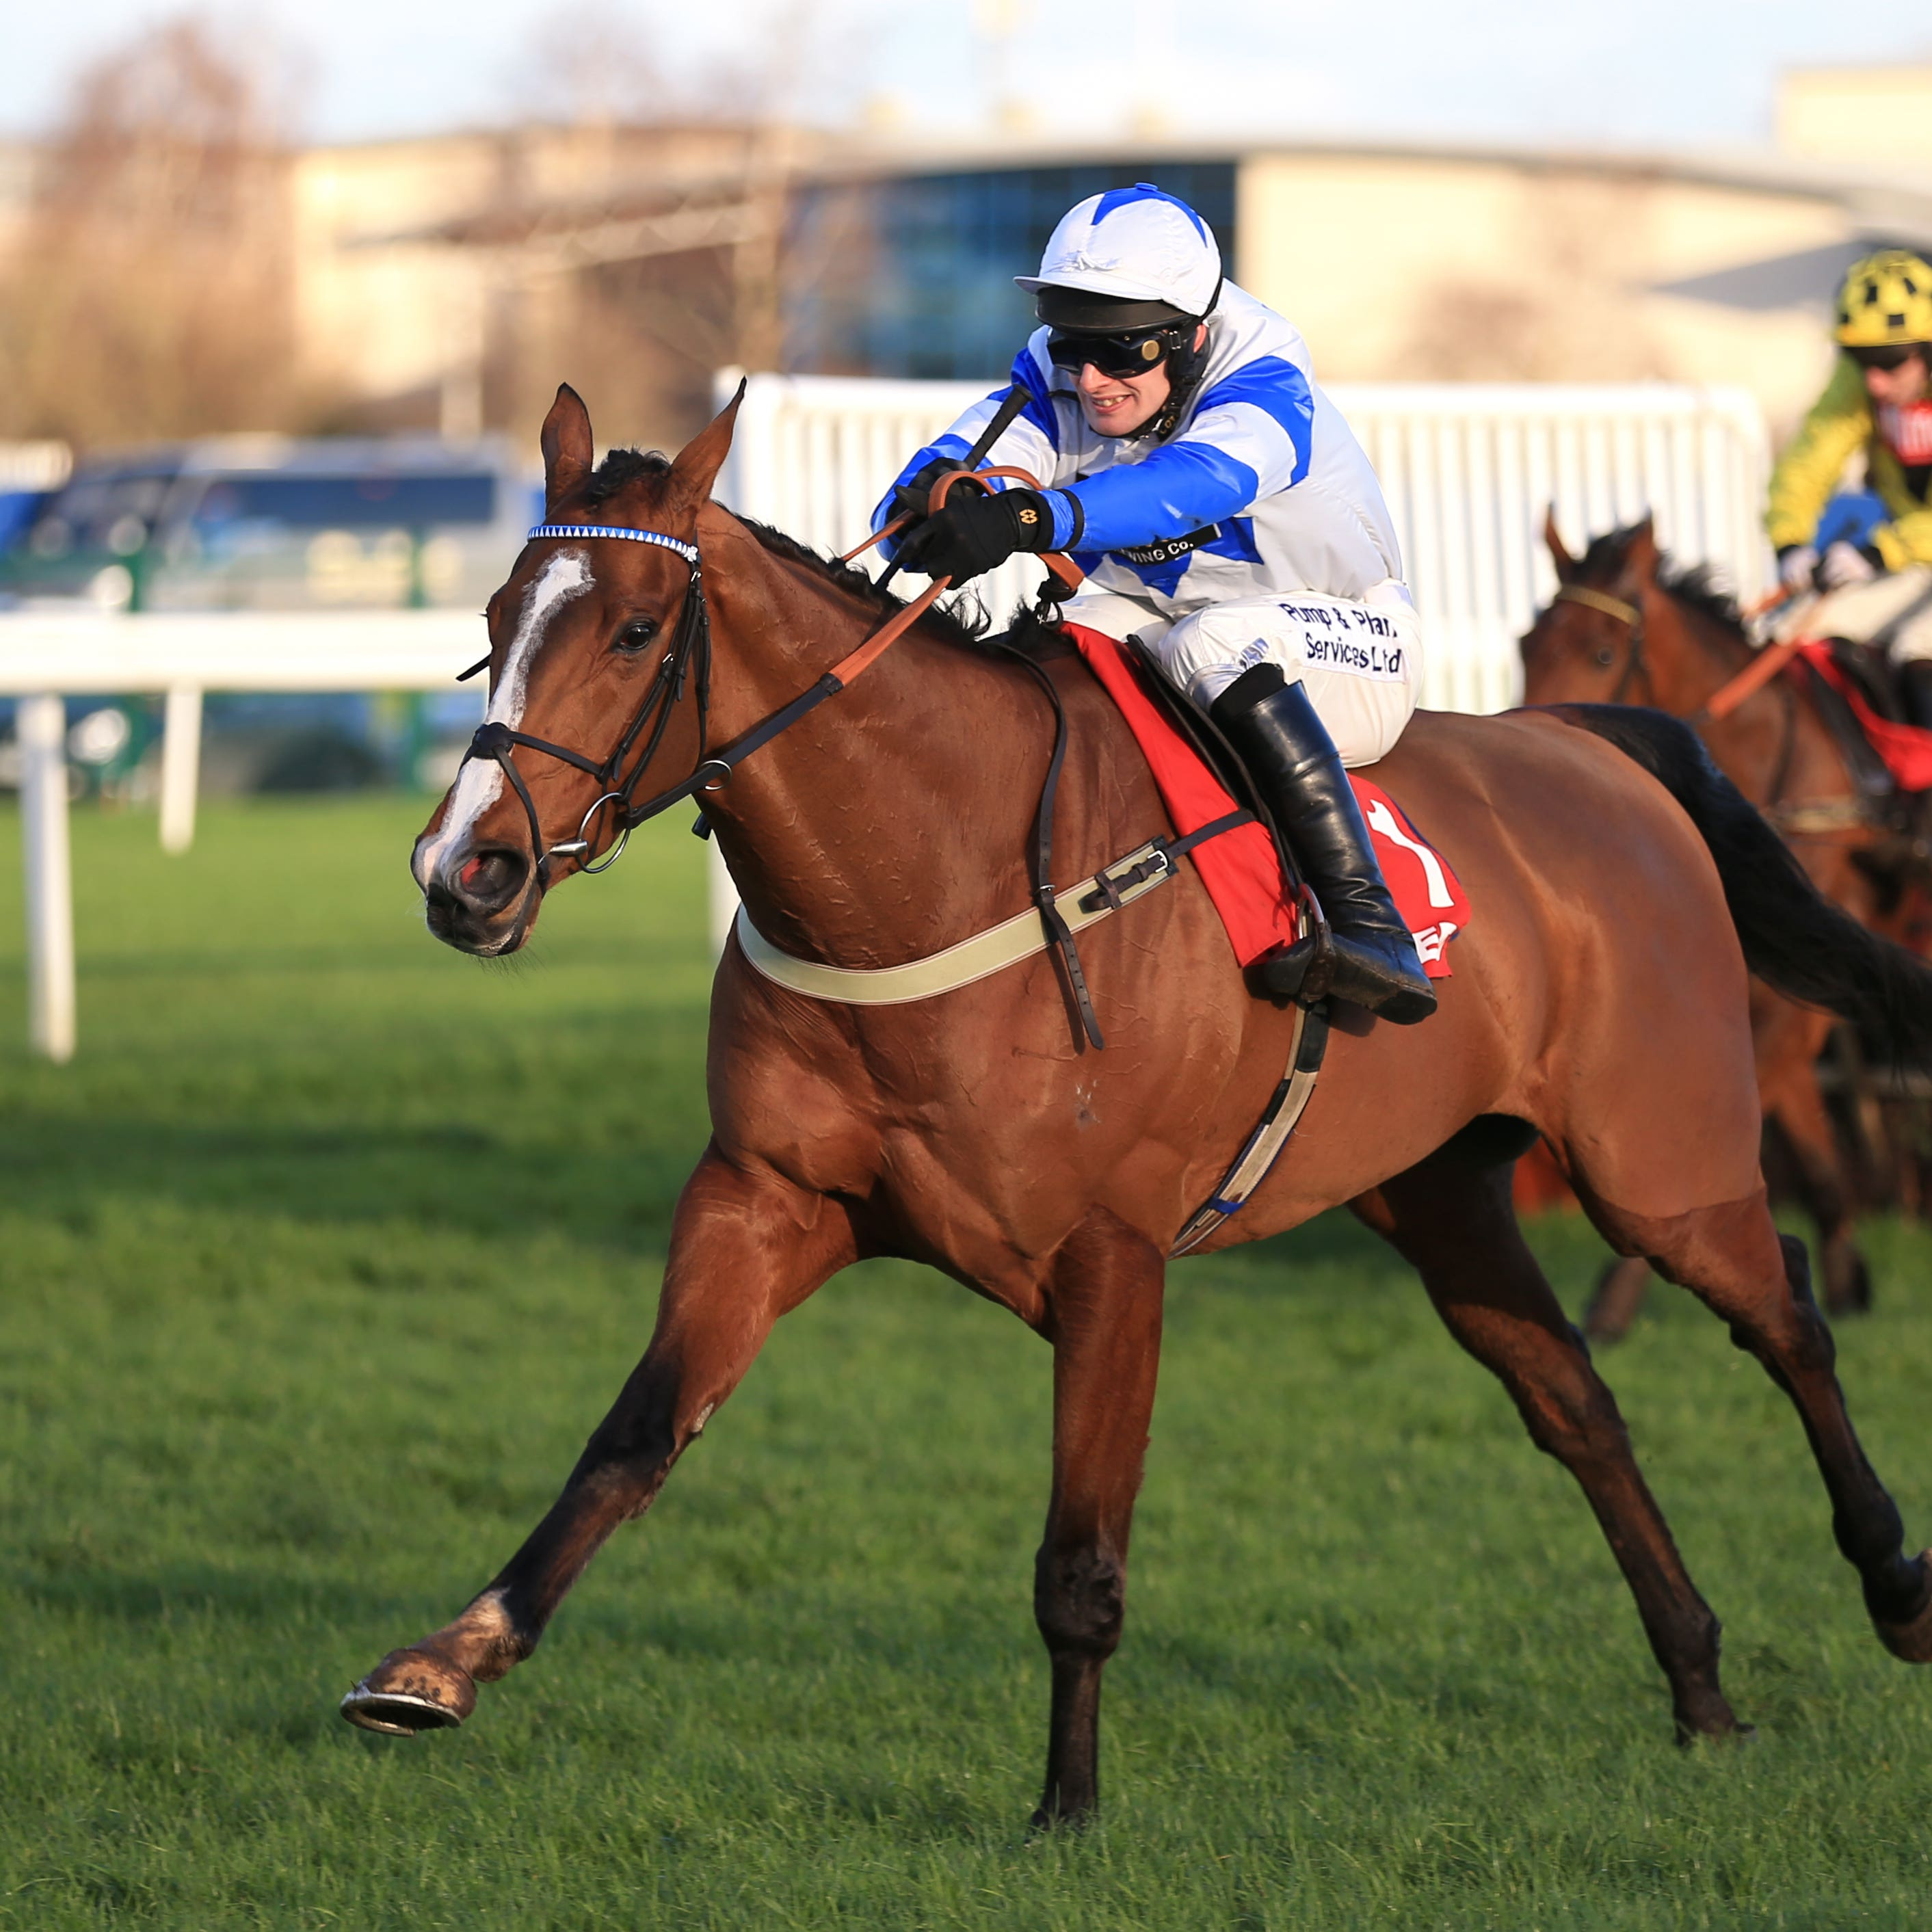 Barters Hill struck Grade One gold in the Challow Hurdle